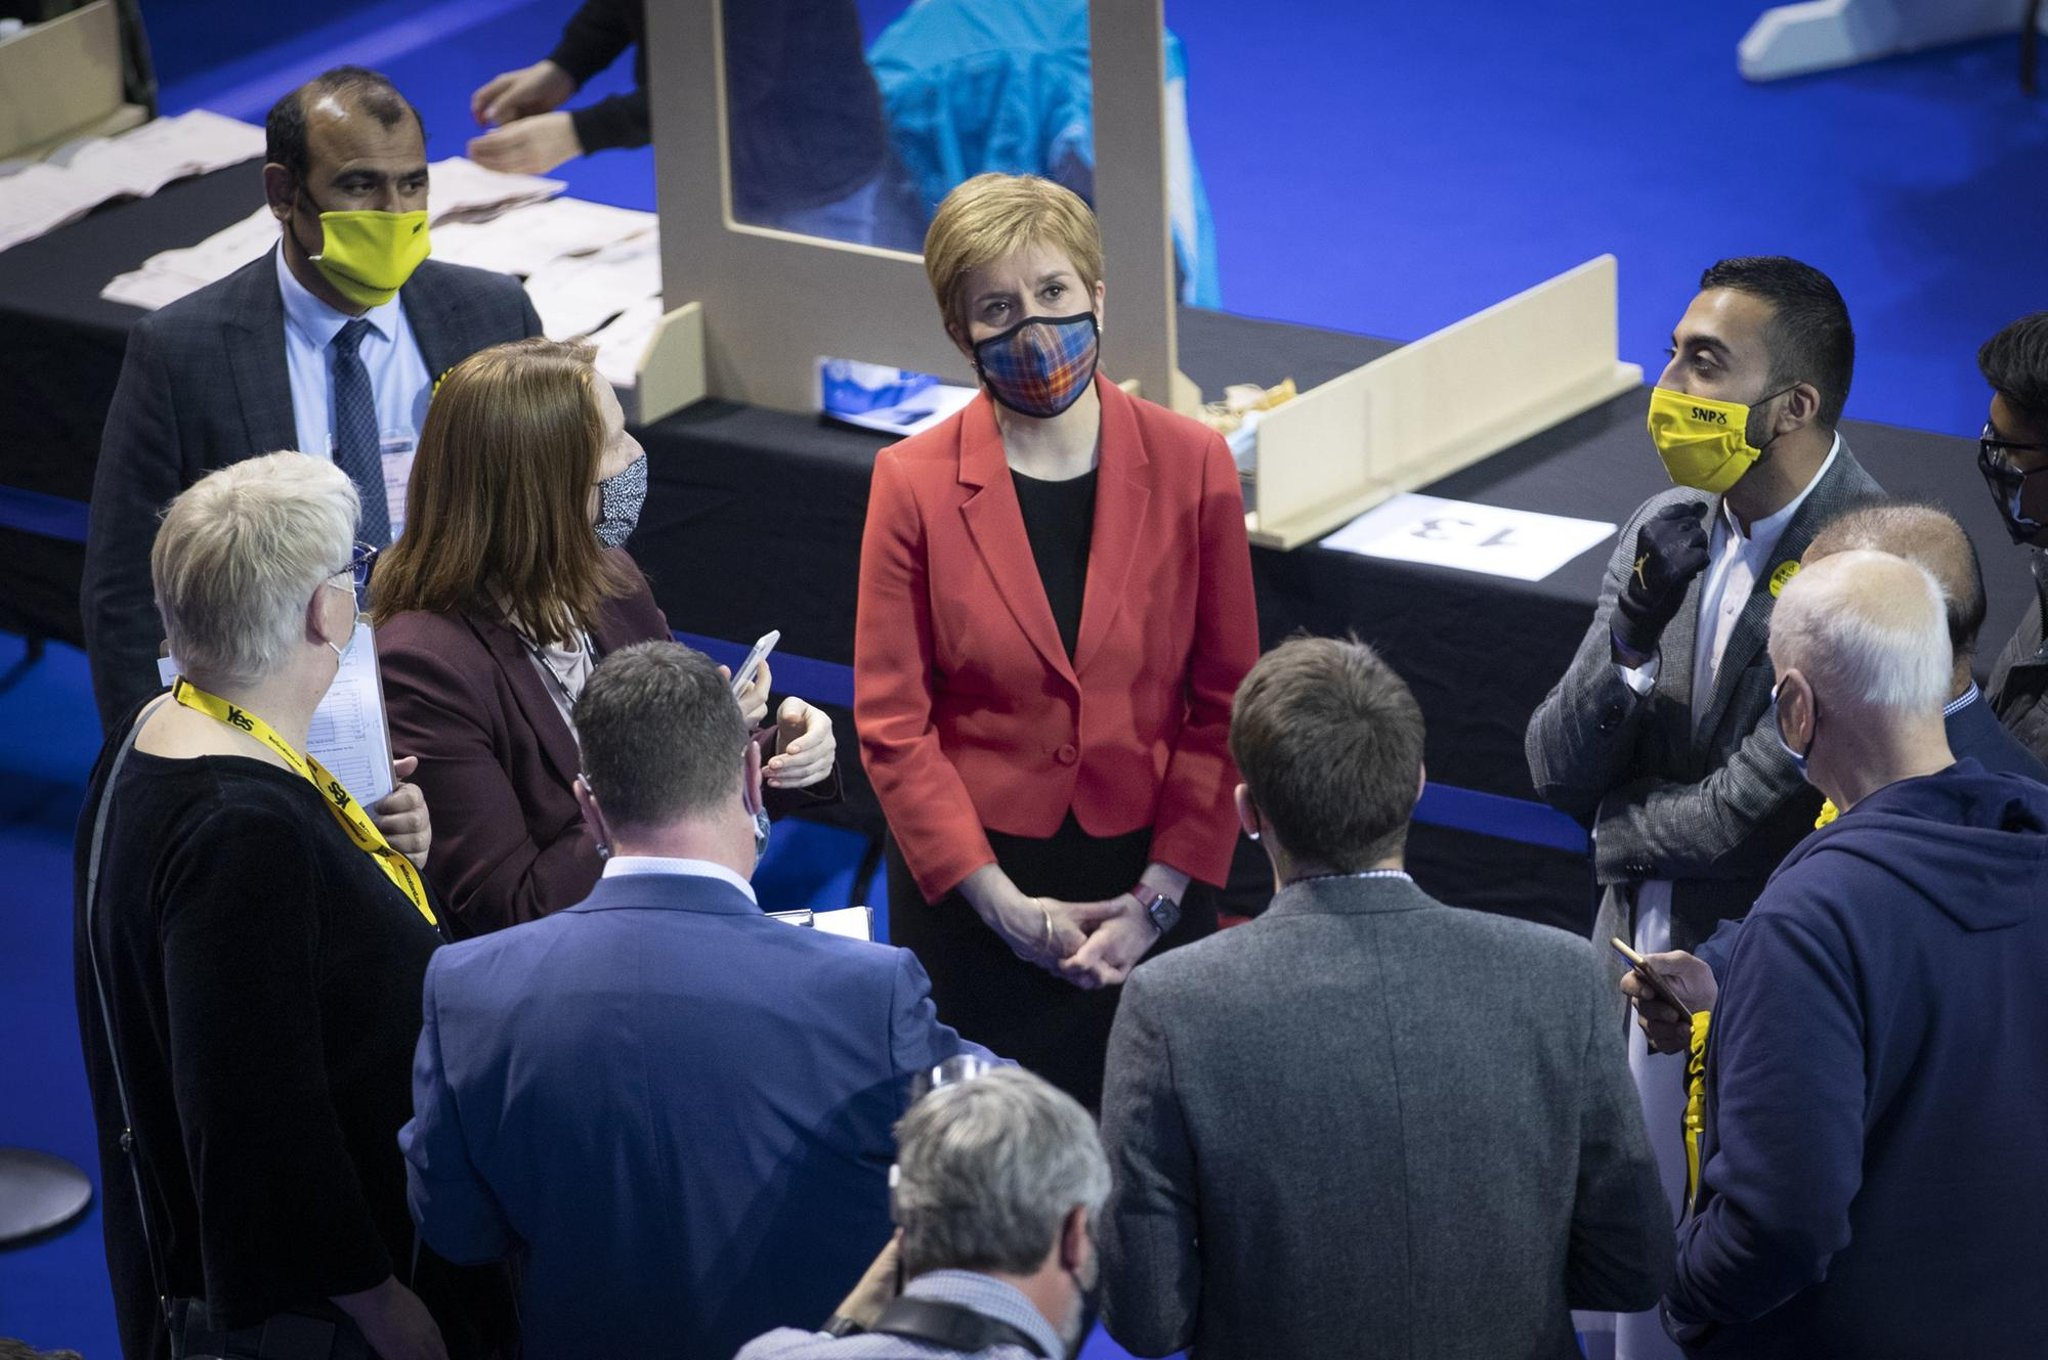 Scottish Election 2021 results: No dramas, no upsets, the Holyrood election that fell flat